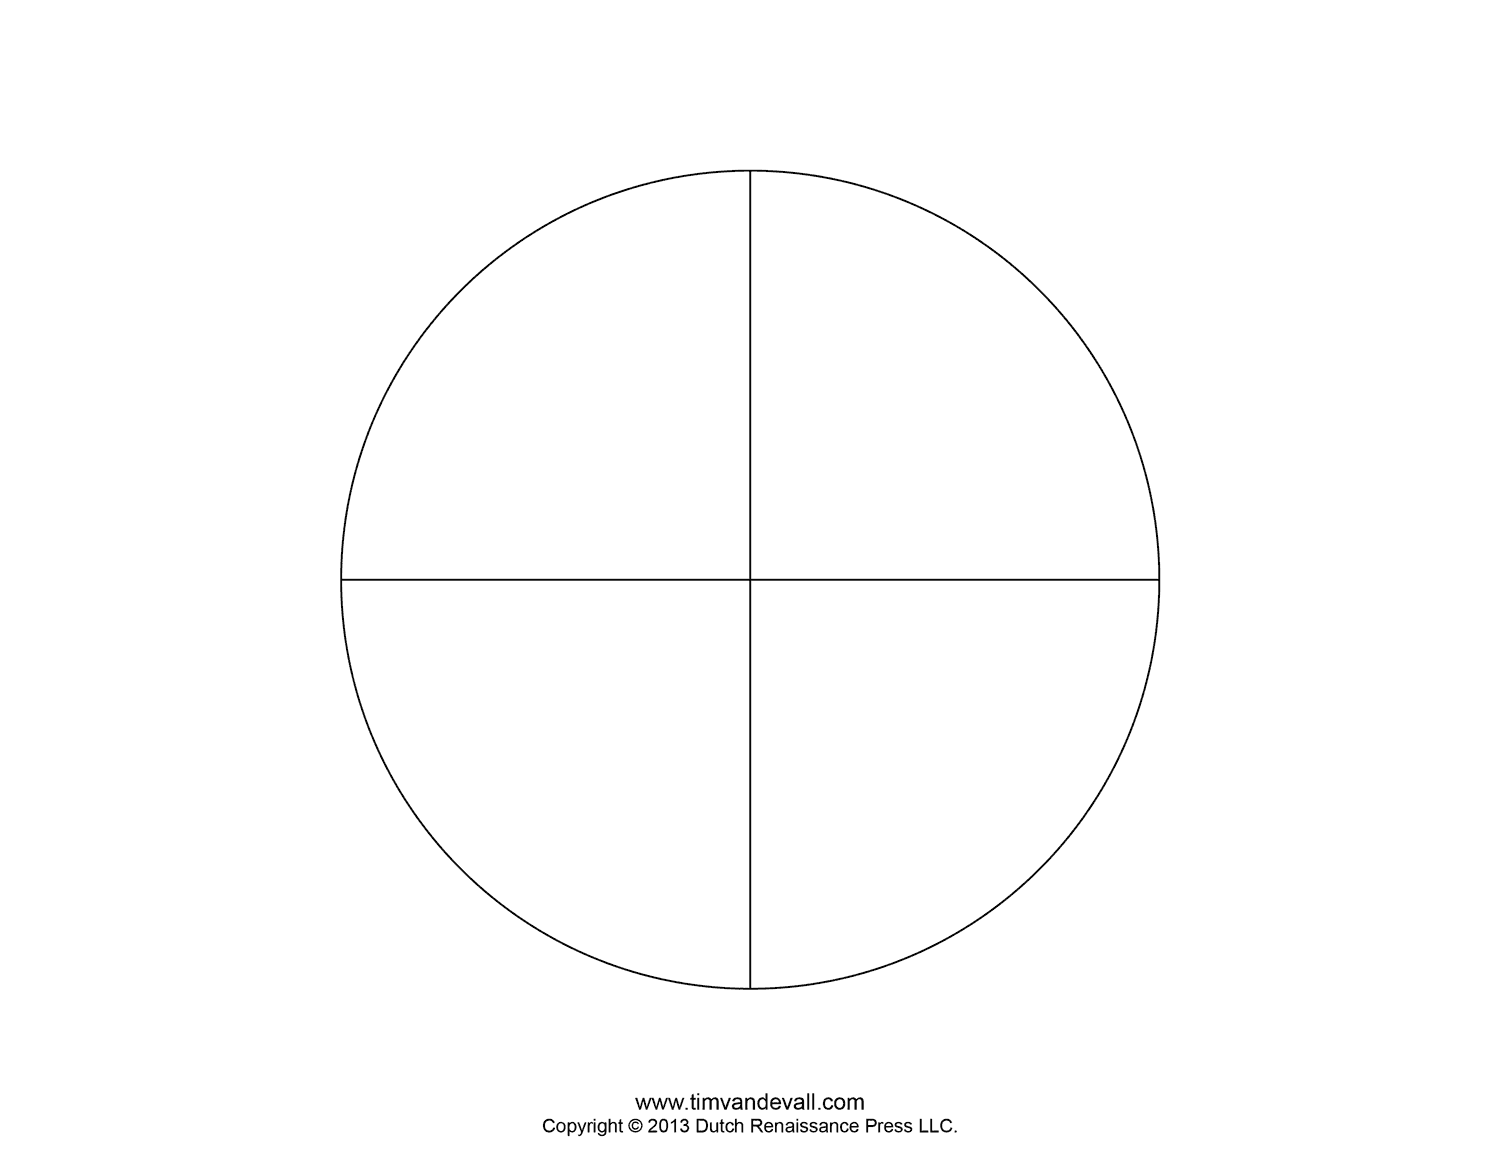 search results for circle with 24 sections template calendar 2015. Black Bedroom Furniture Sets. Home Design Ideas